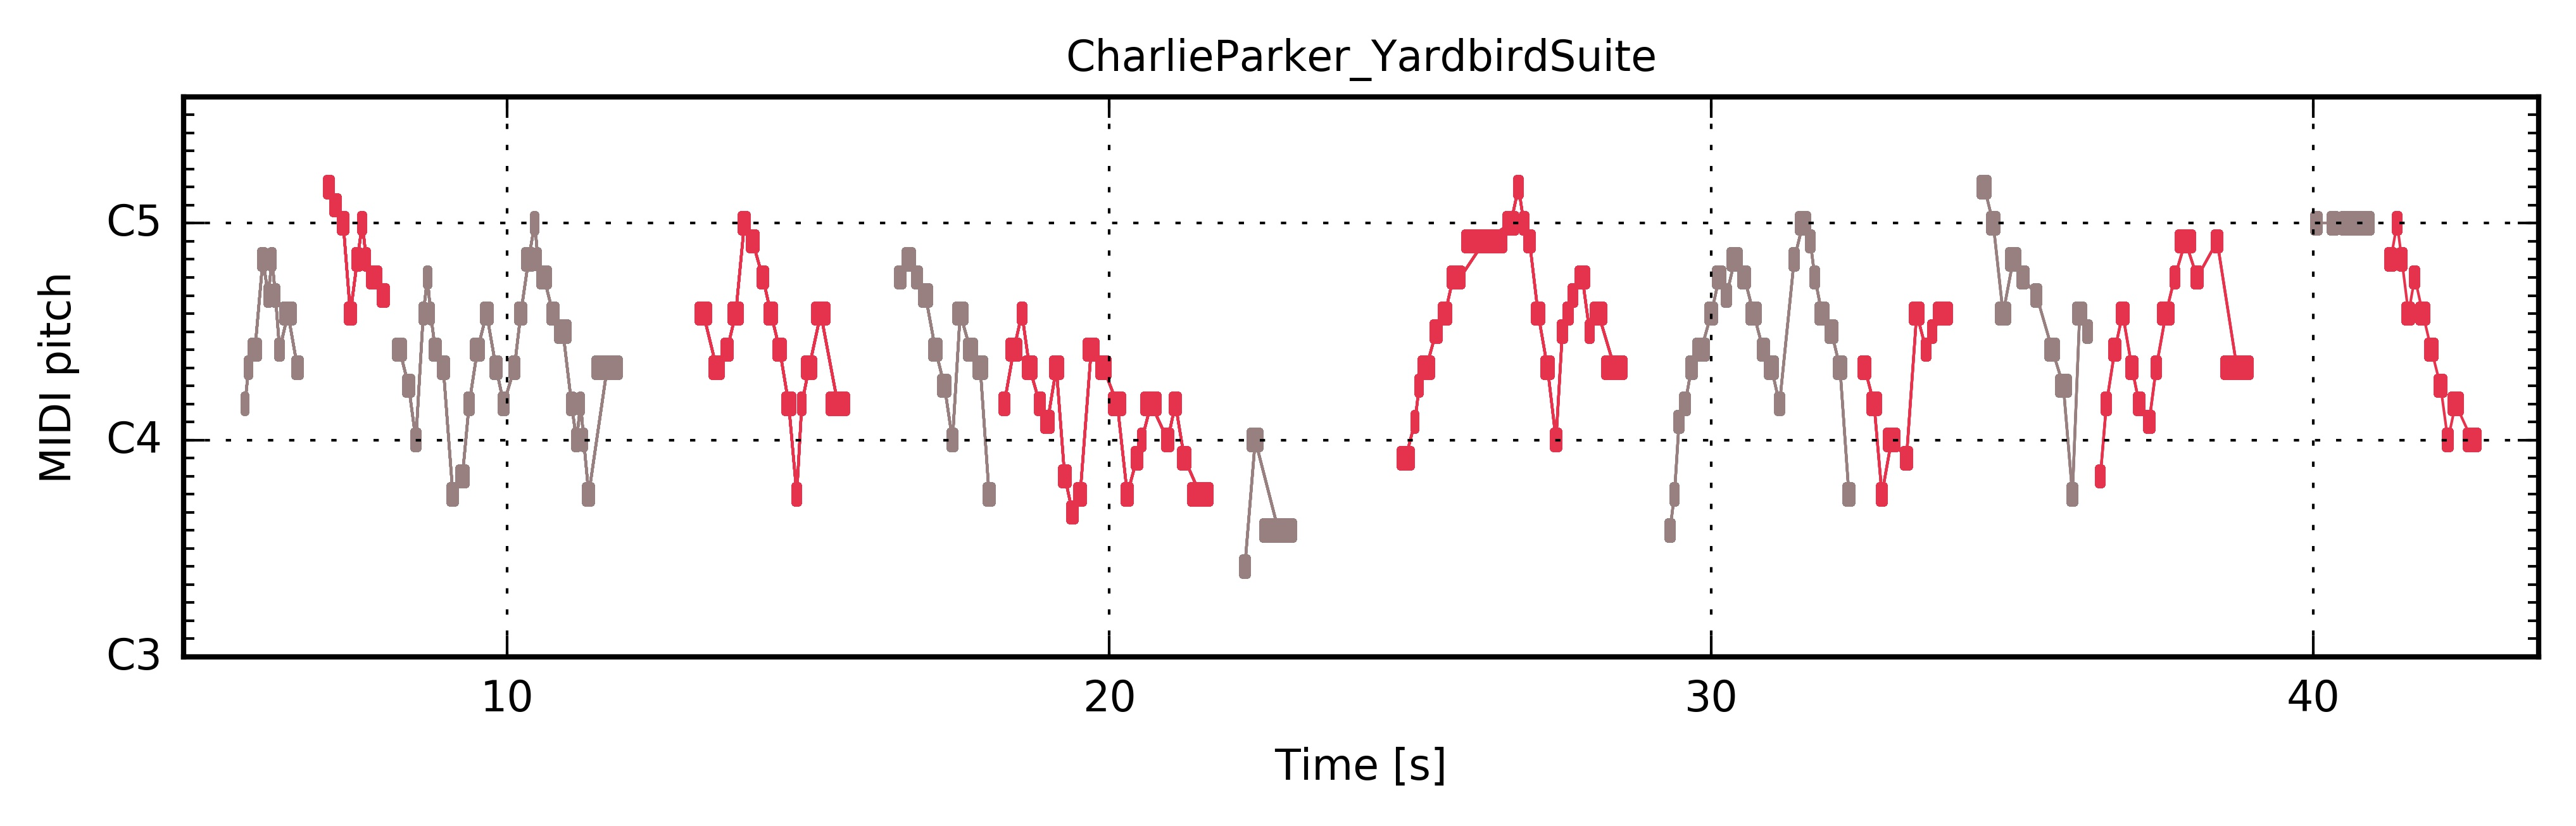 Charlie Parker Yardbird Suite The Jazzomat Research Project How To Read Chord Diagrams Or Stamps Piano Roll